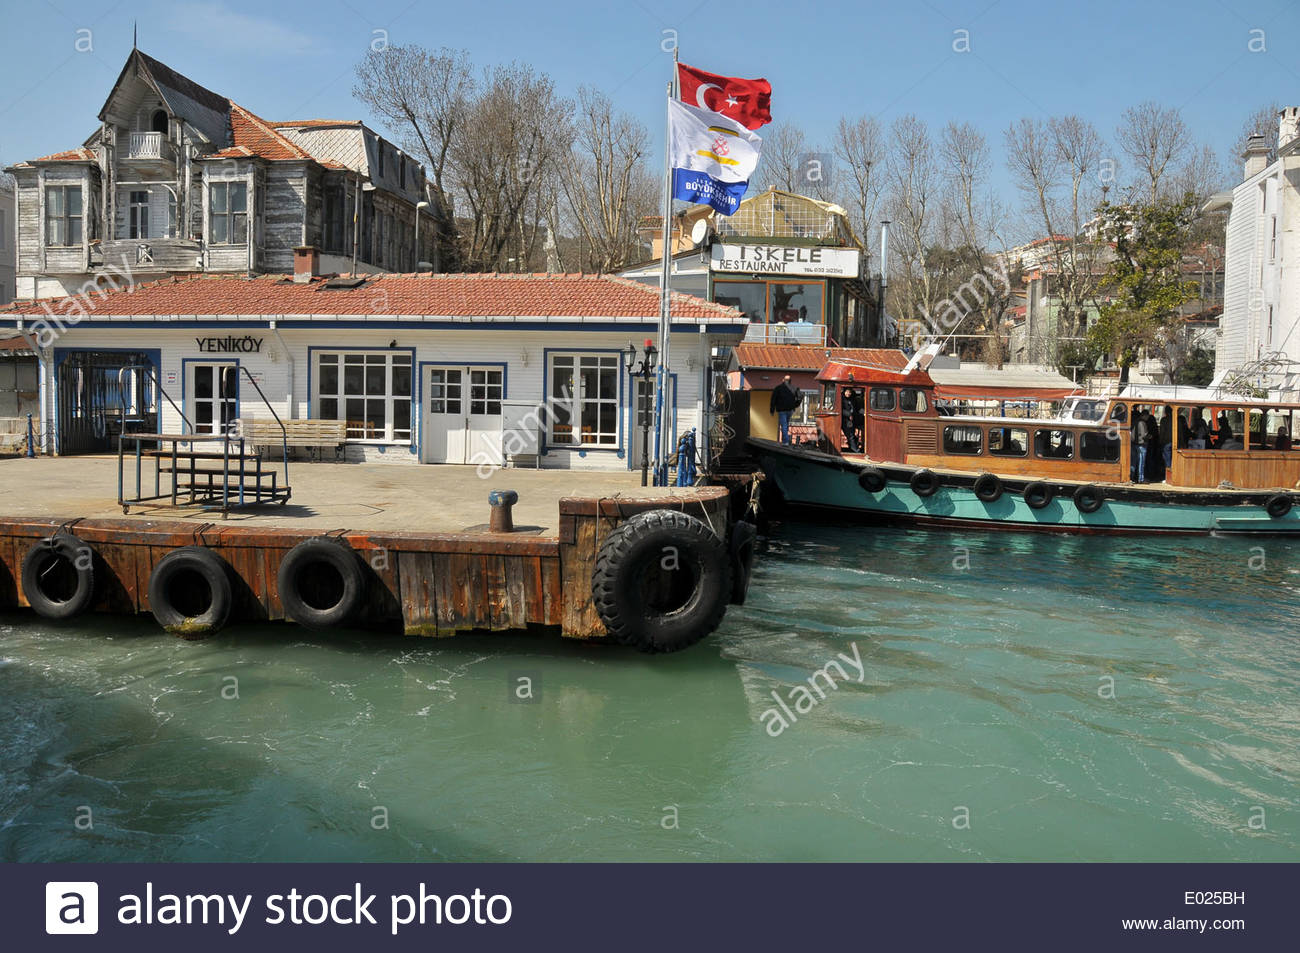 The ferry boat station at Yeniköy on the European side of the Bosphorus. - Stock Image